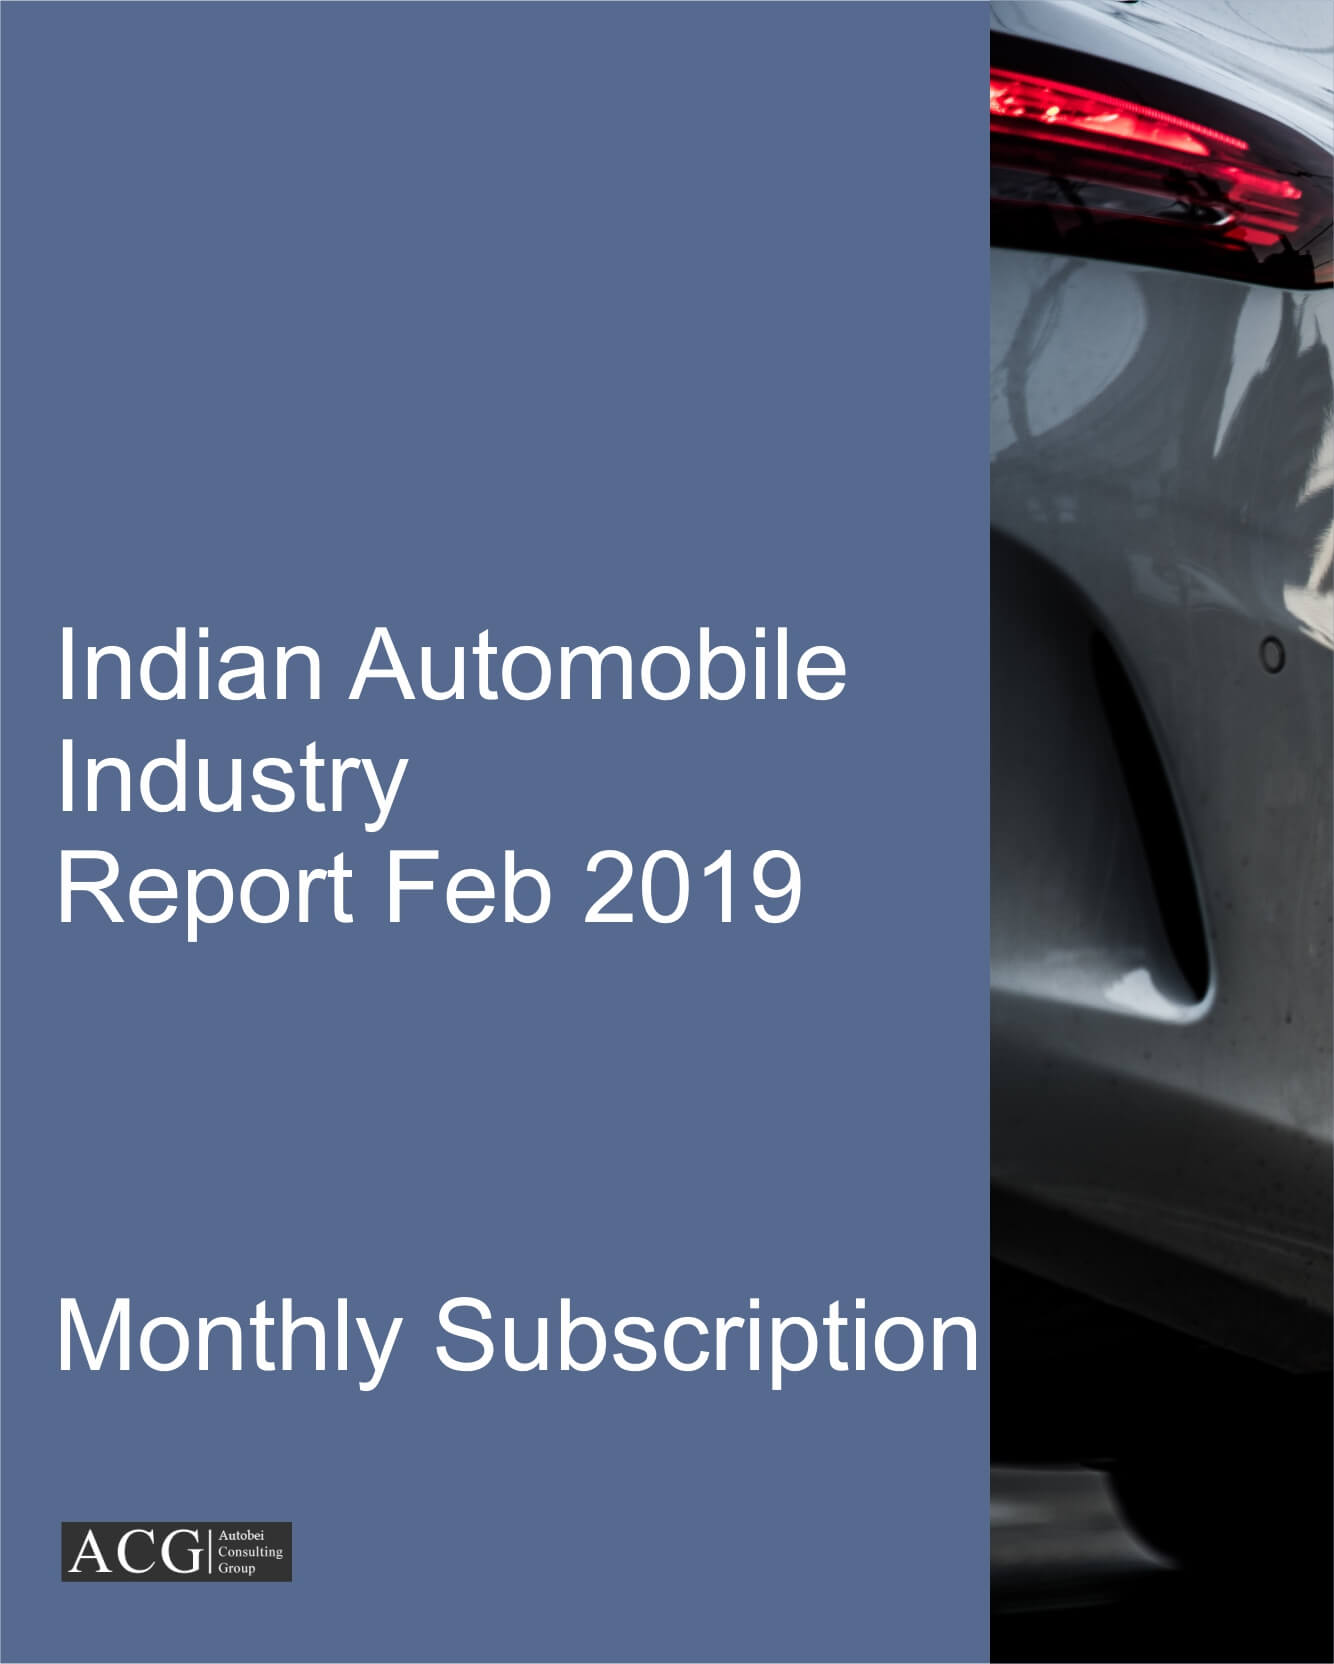 Indian Automobile Market Research Report Feb 2019